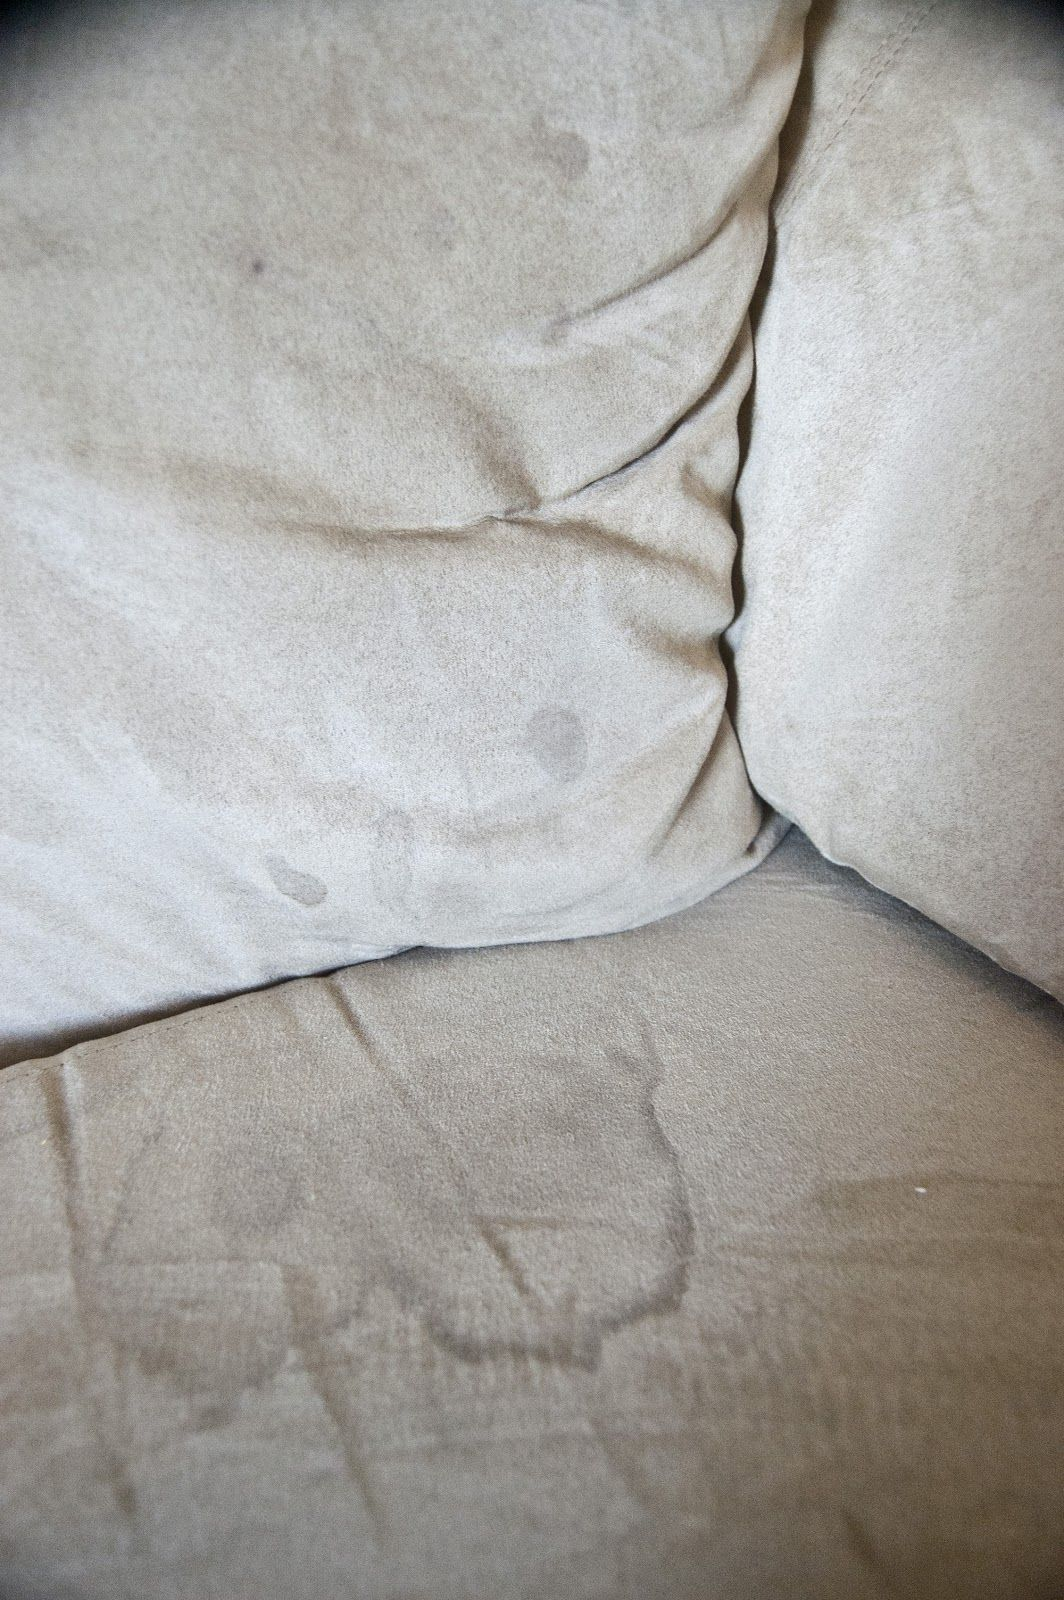 How to clean a microfiber couch safely